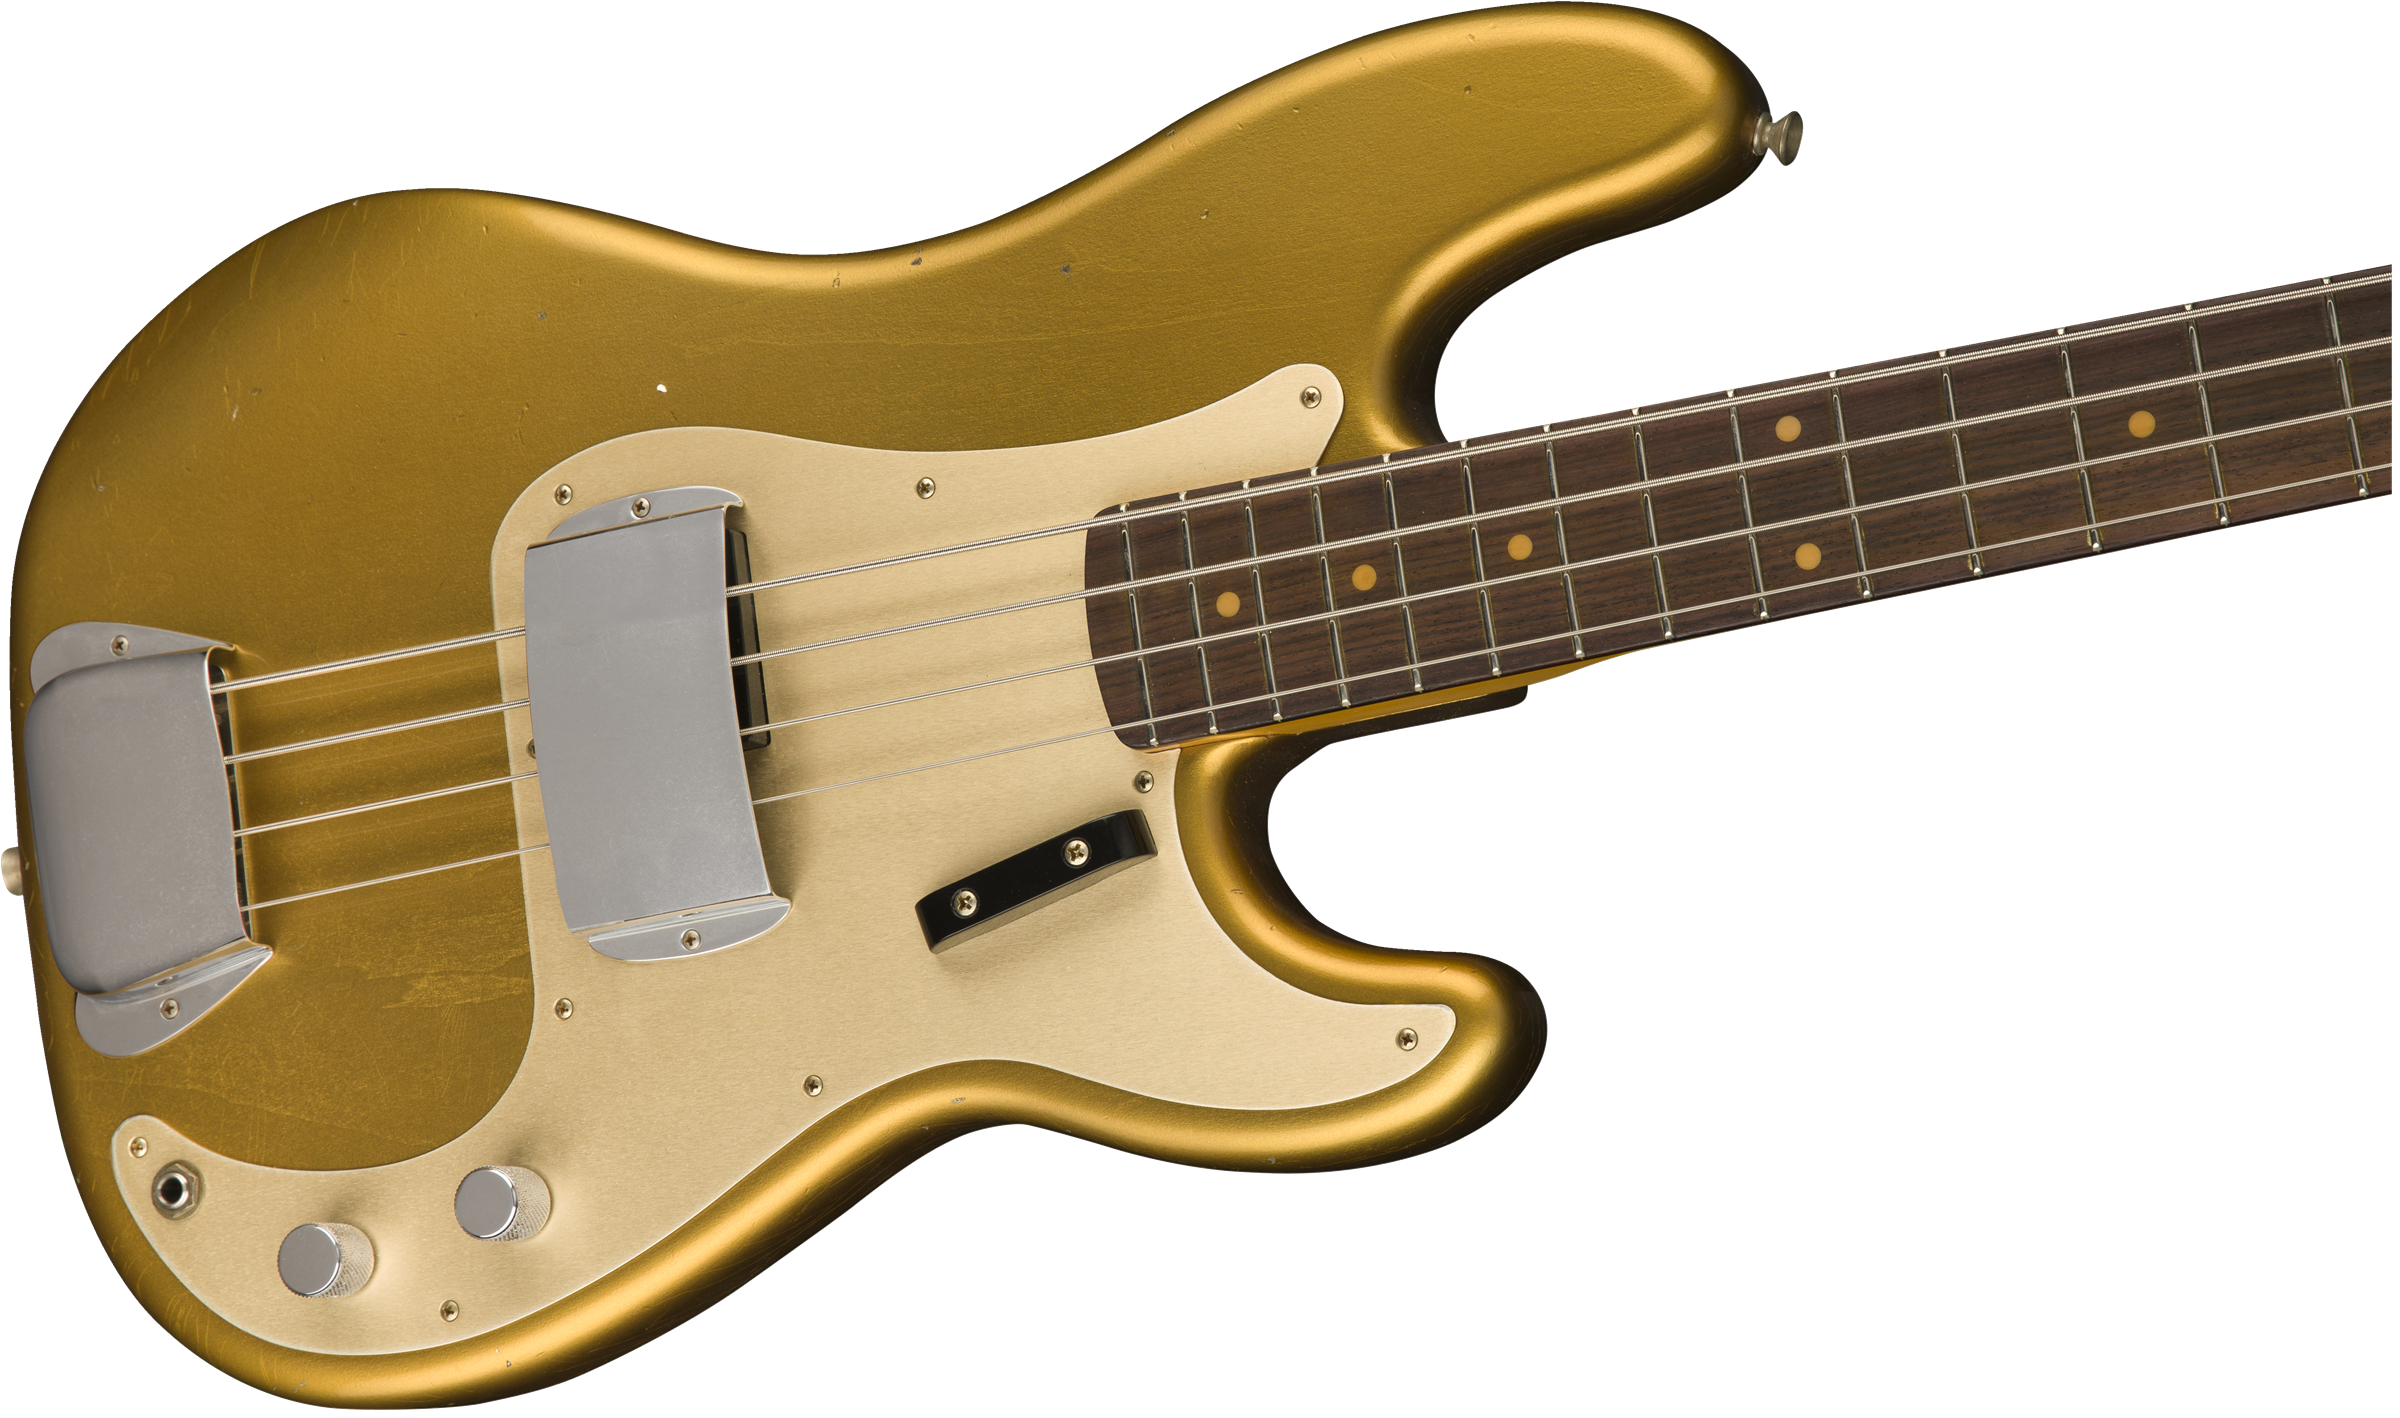 1959 Journeyman Relic Precision Bass Time Machine Series